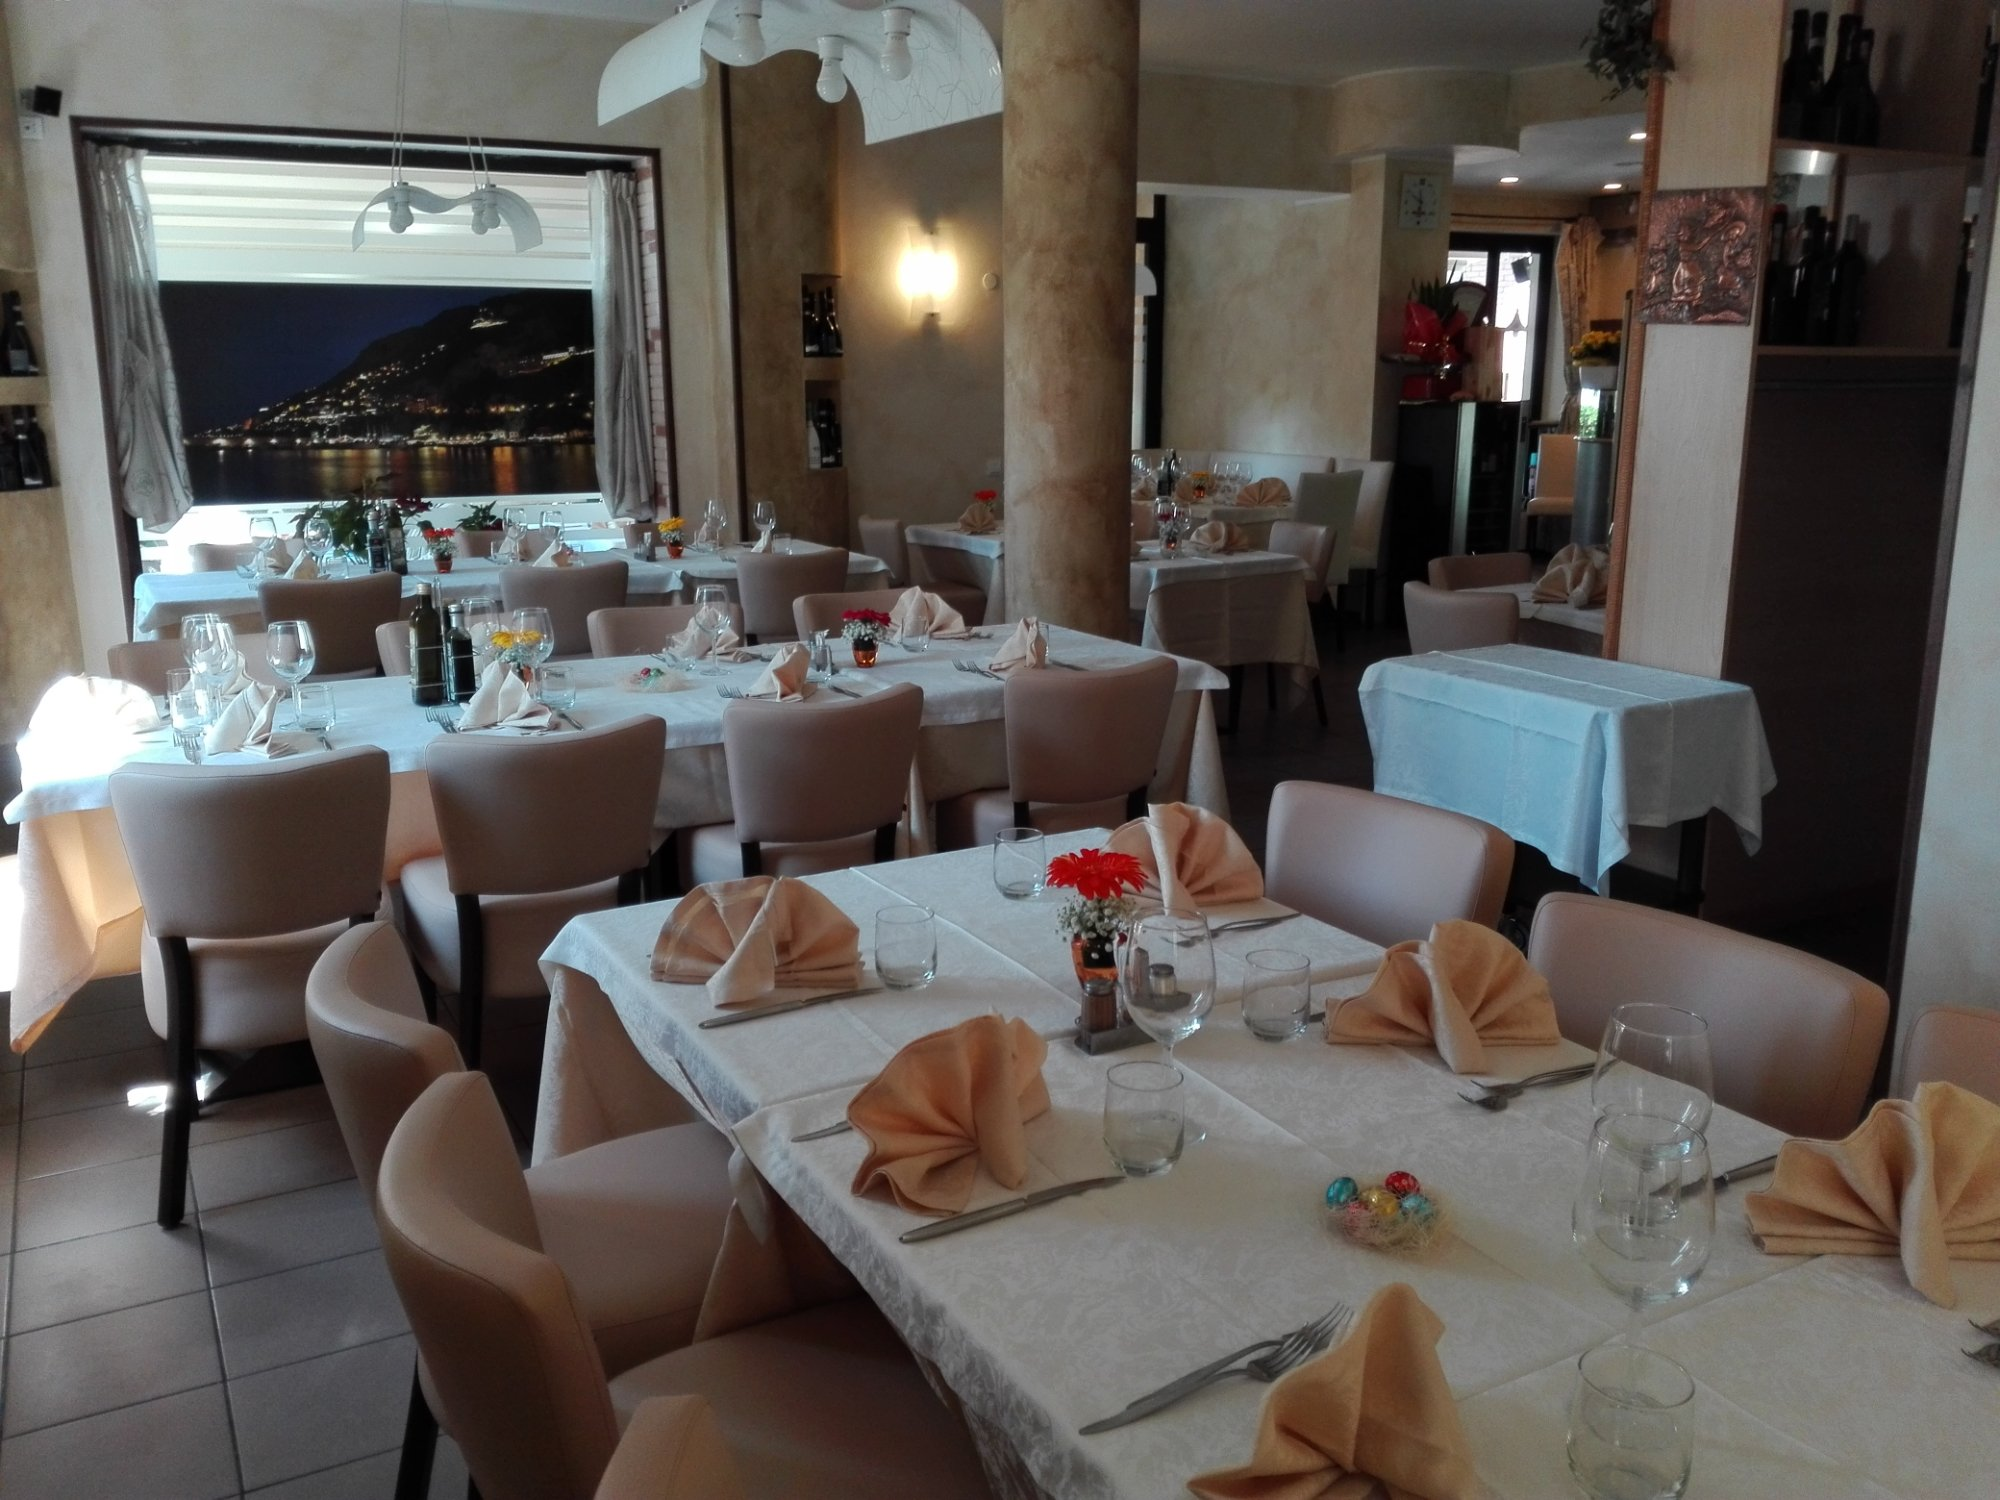 Things To Do in Neapolitan, Restaurants in Neapolitan